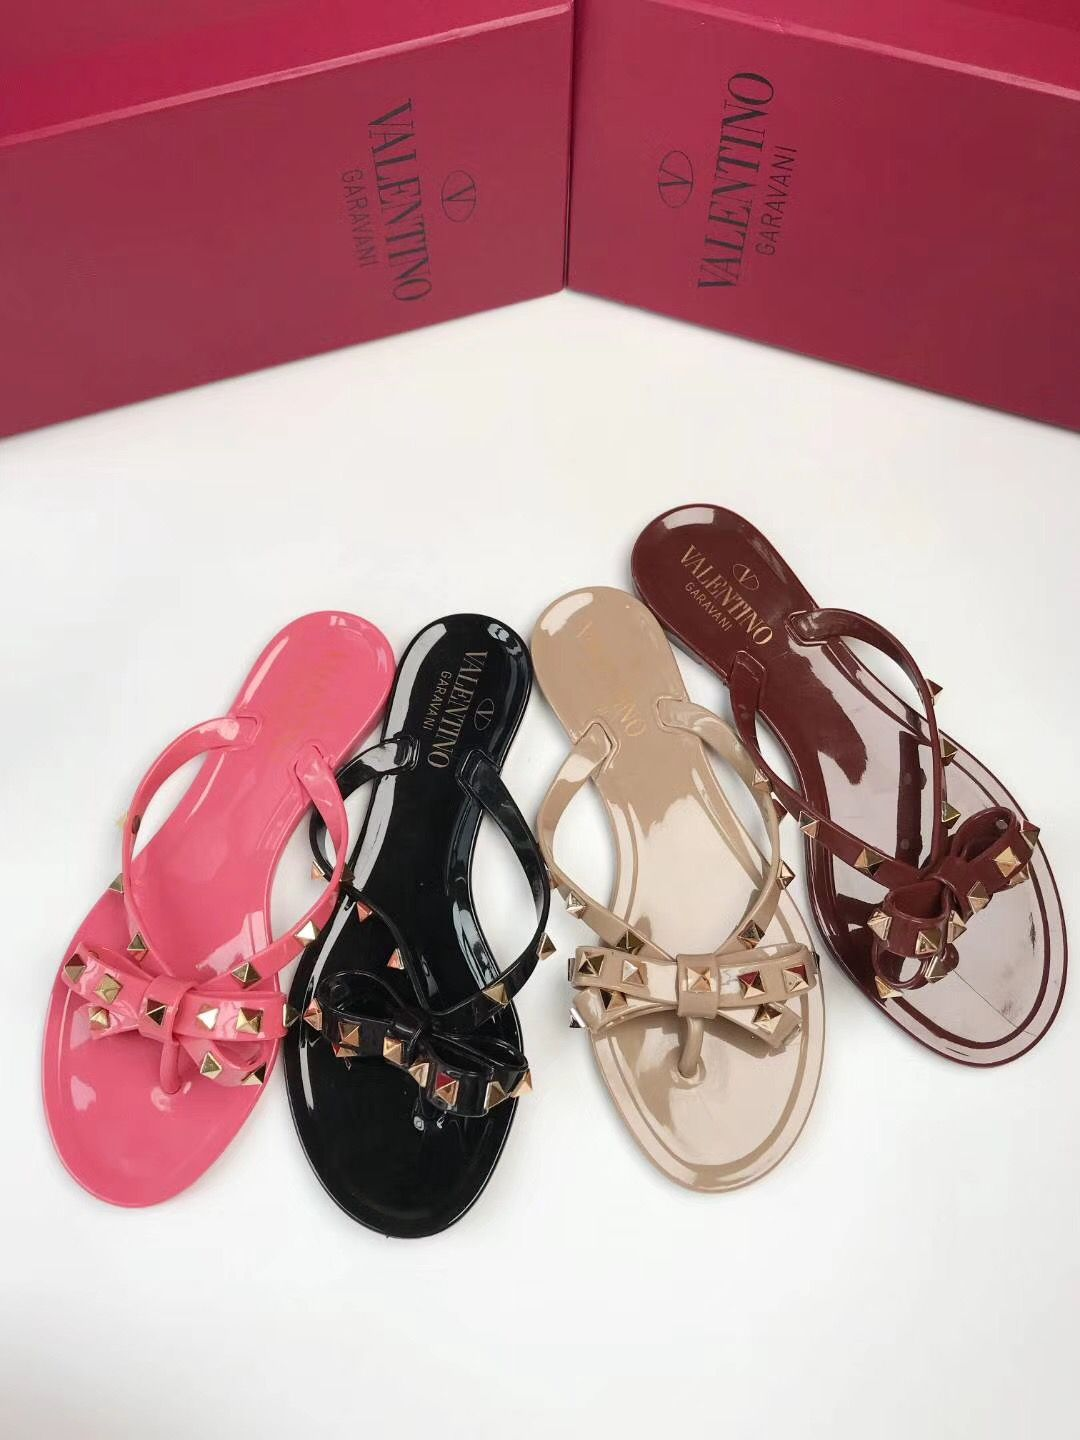 37d7a6c2b Valentino jelly slippers flop flips